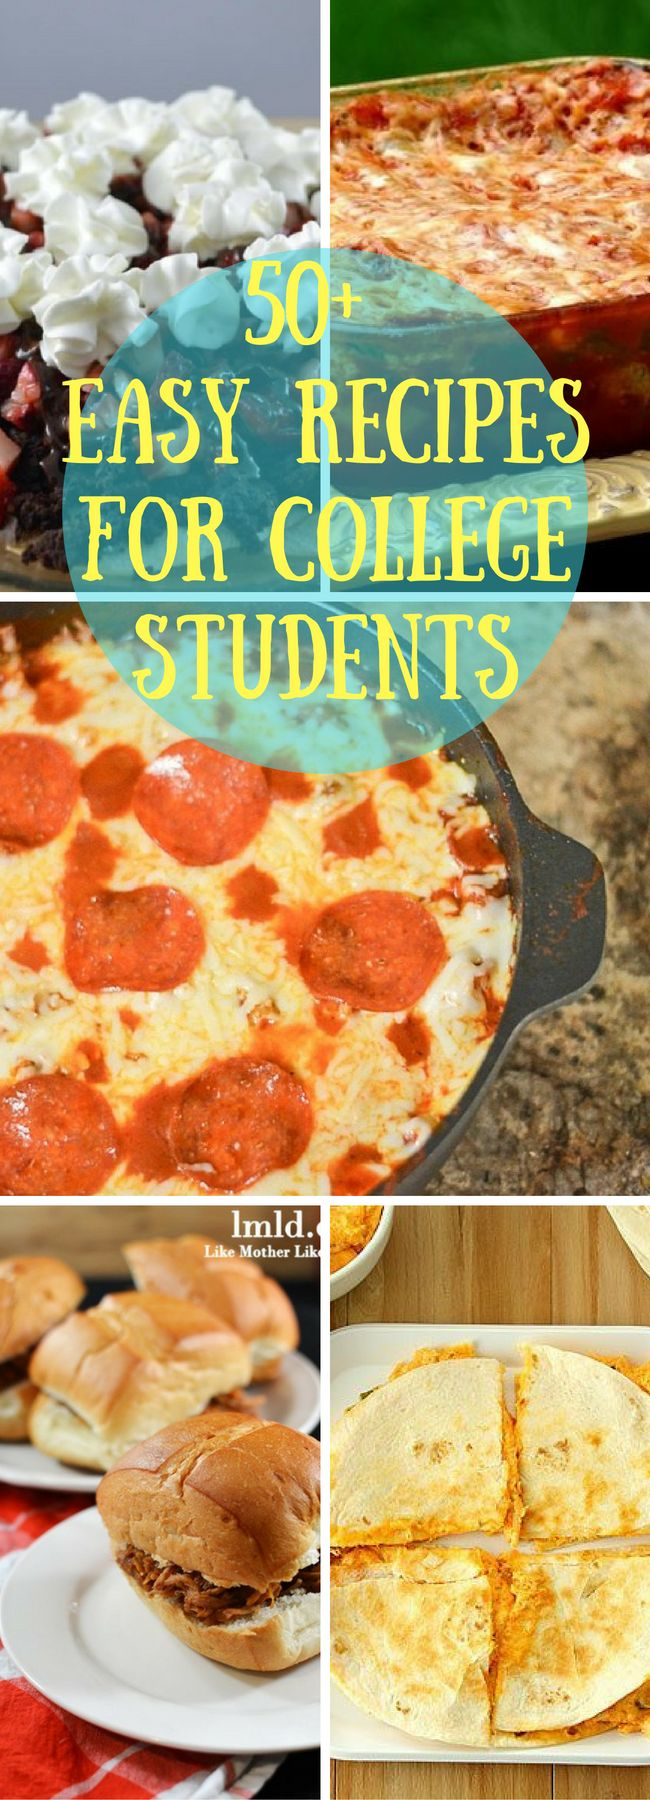 College Recipes / Recipes for College Students / College Student Recipes / Easy Recipes / Easy Recipes for College Students / Beginning Cook